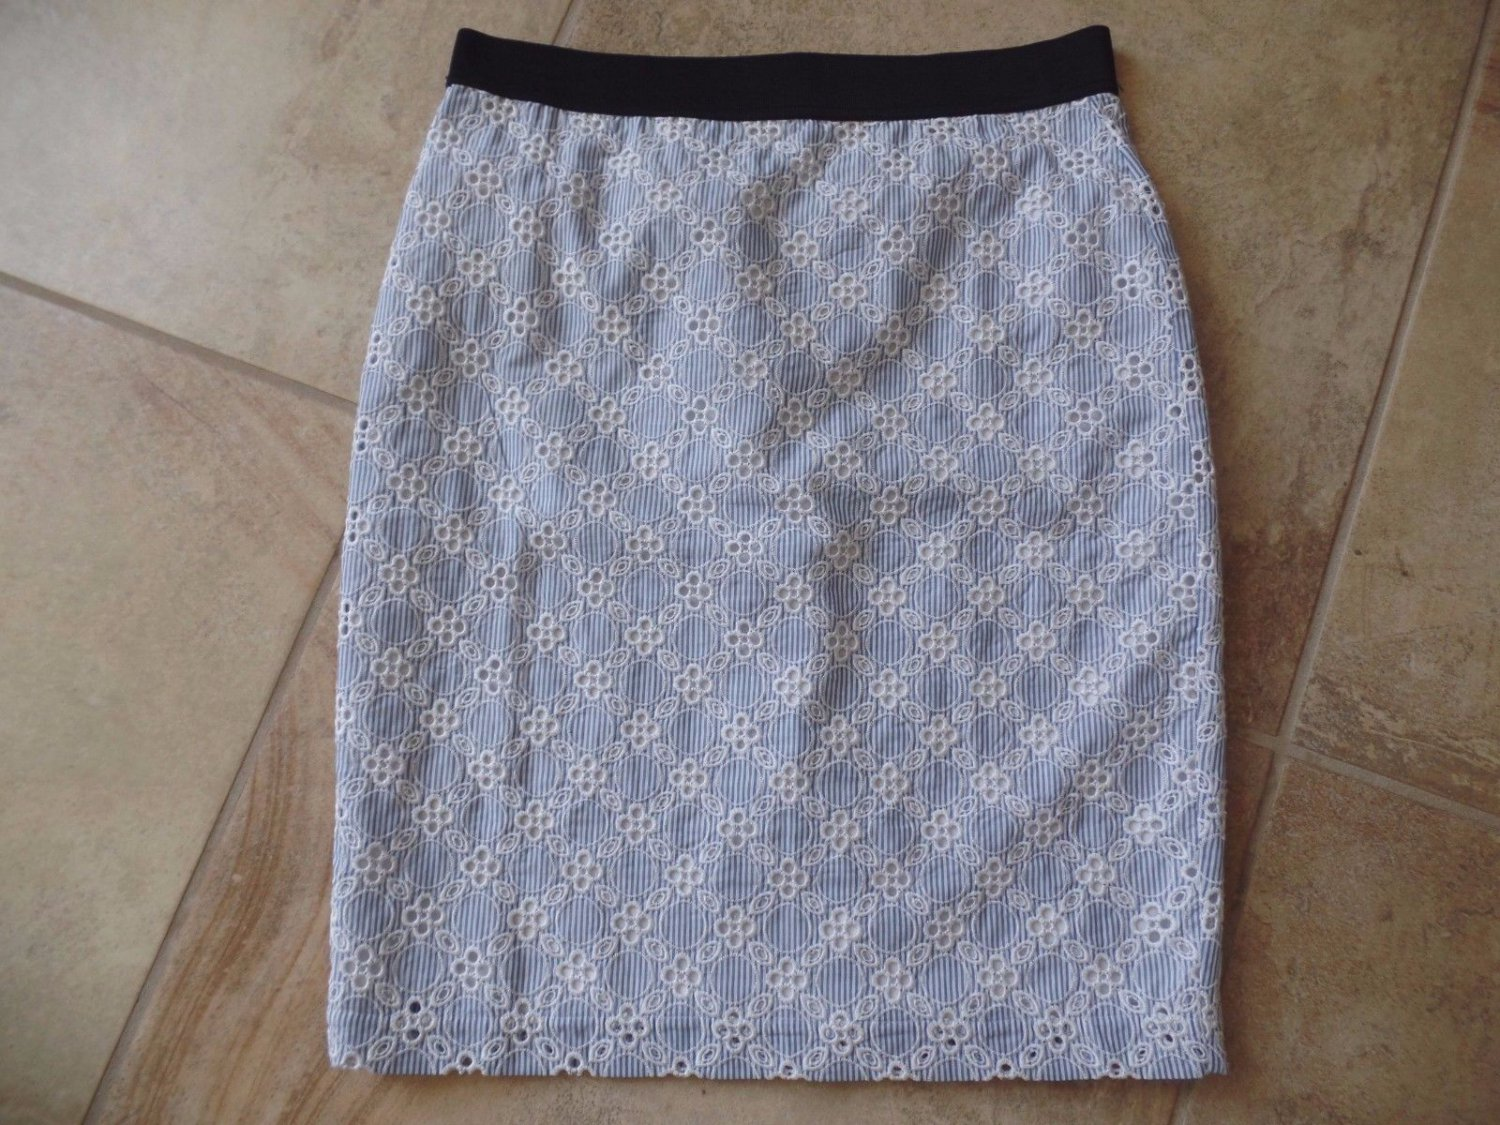 NWT ANN TAYLOR Blue Eyelet Lace Pencil Straight Skirt 8